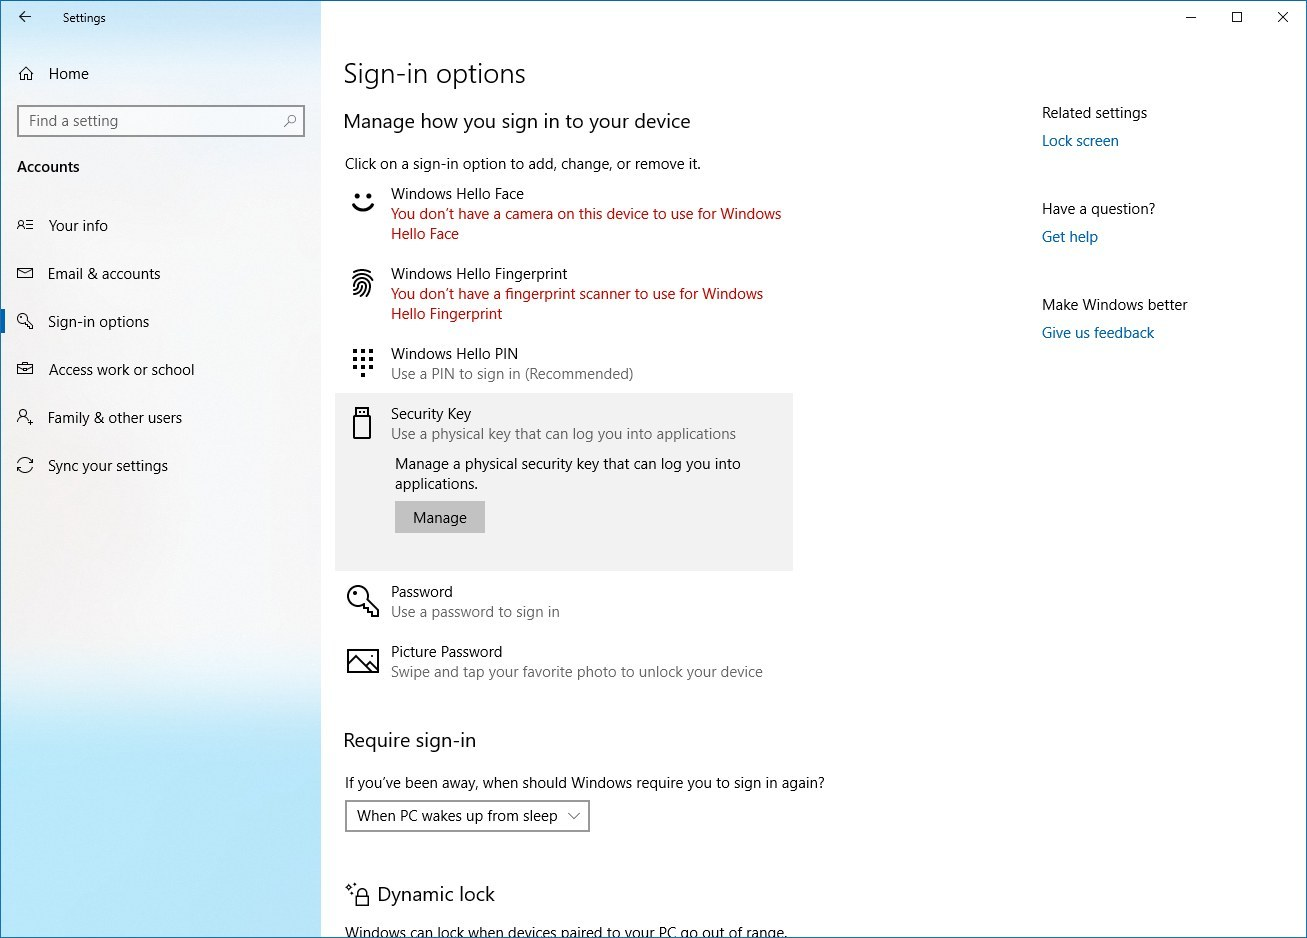 Sign-in options for Windows 10 version 1903